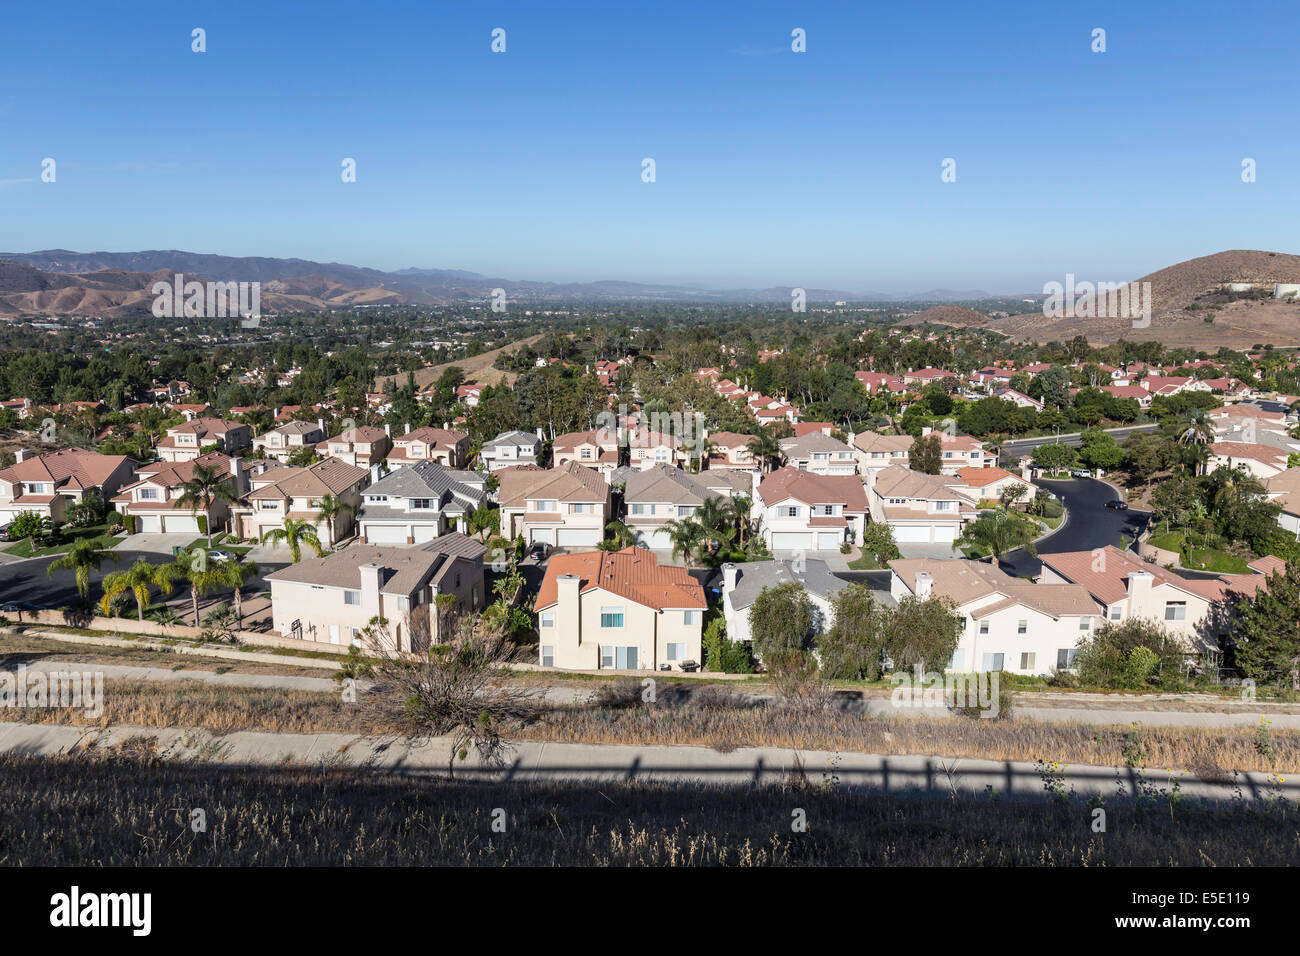 Comfortable suburban neighborhood in Ventura County's Simi Valley near Los Angeles, California. - Stock Image